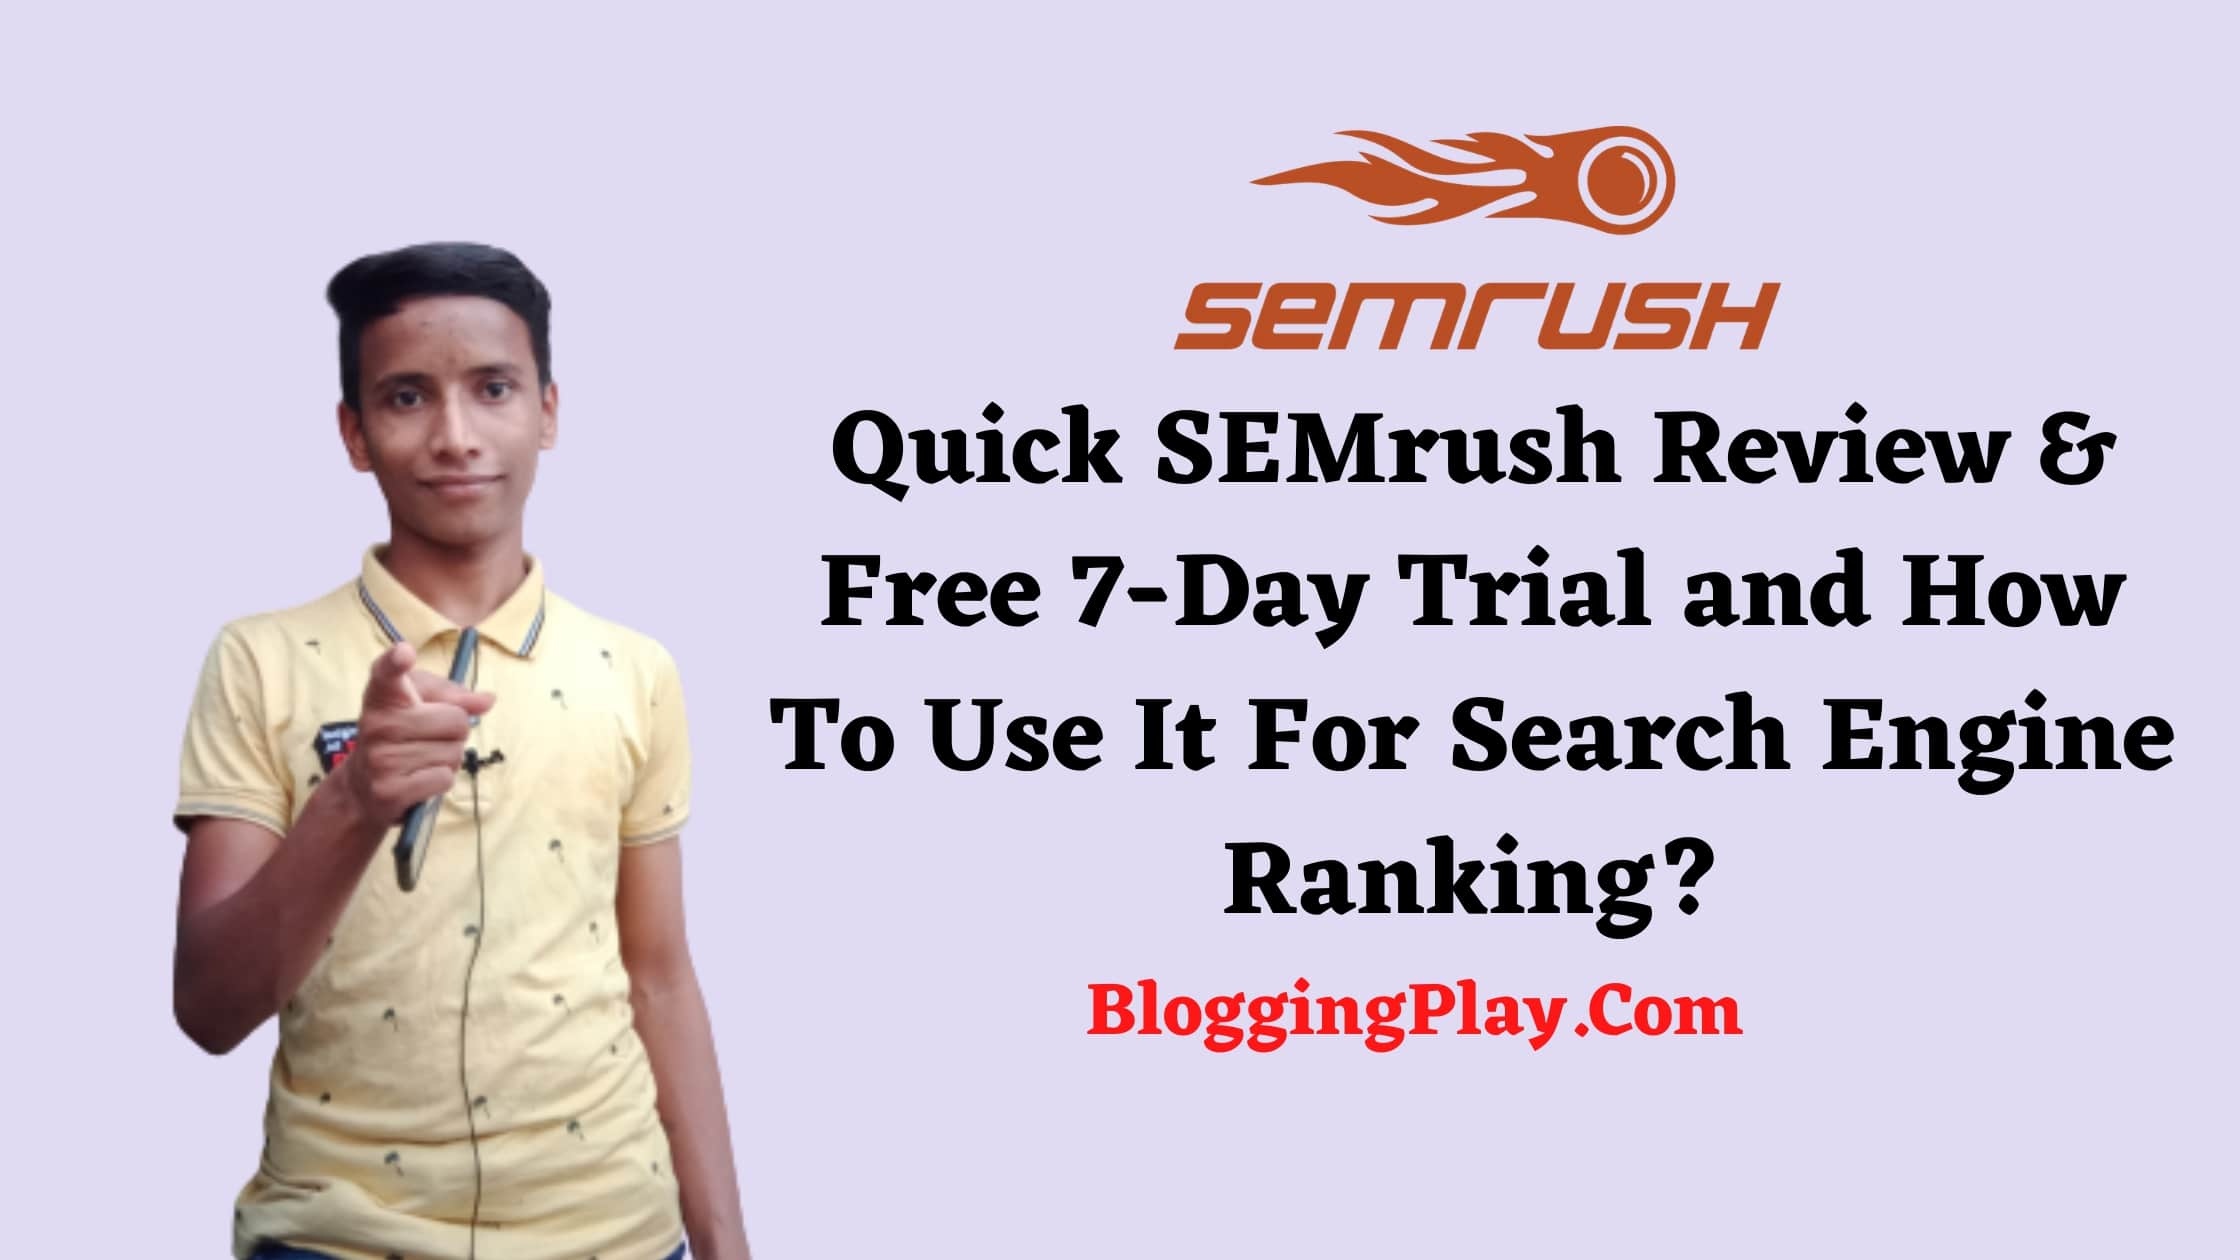 SEMrush free trial 7-day